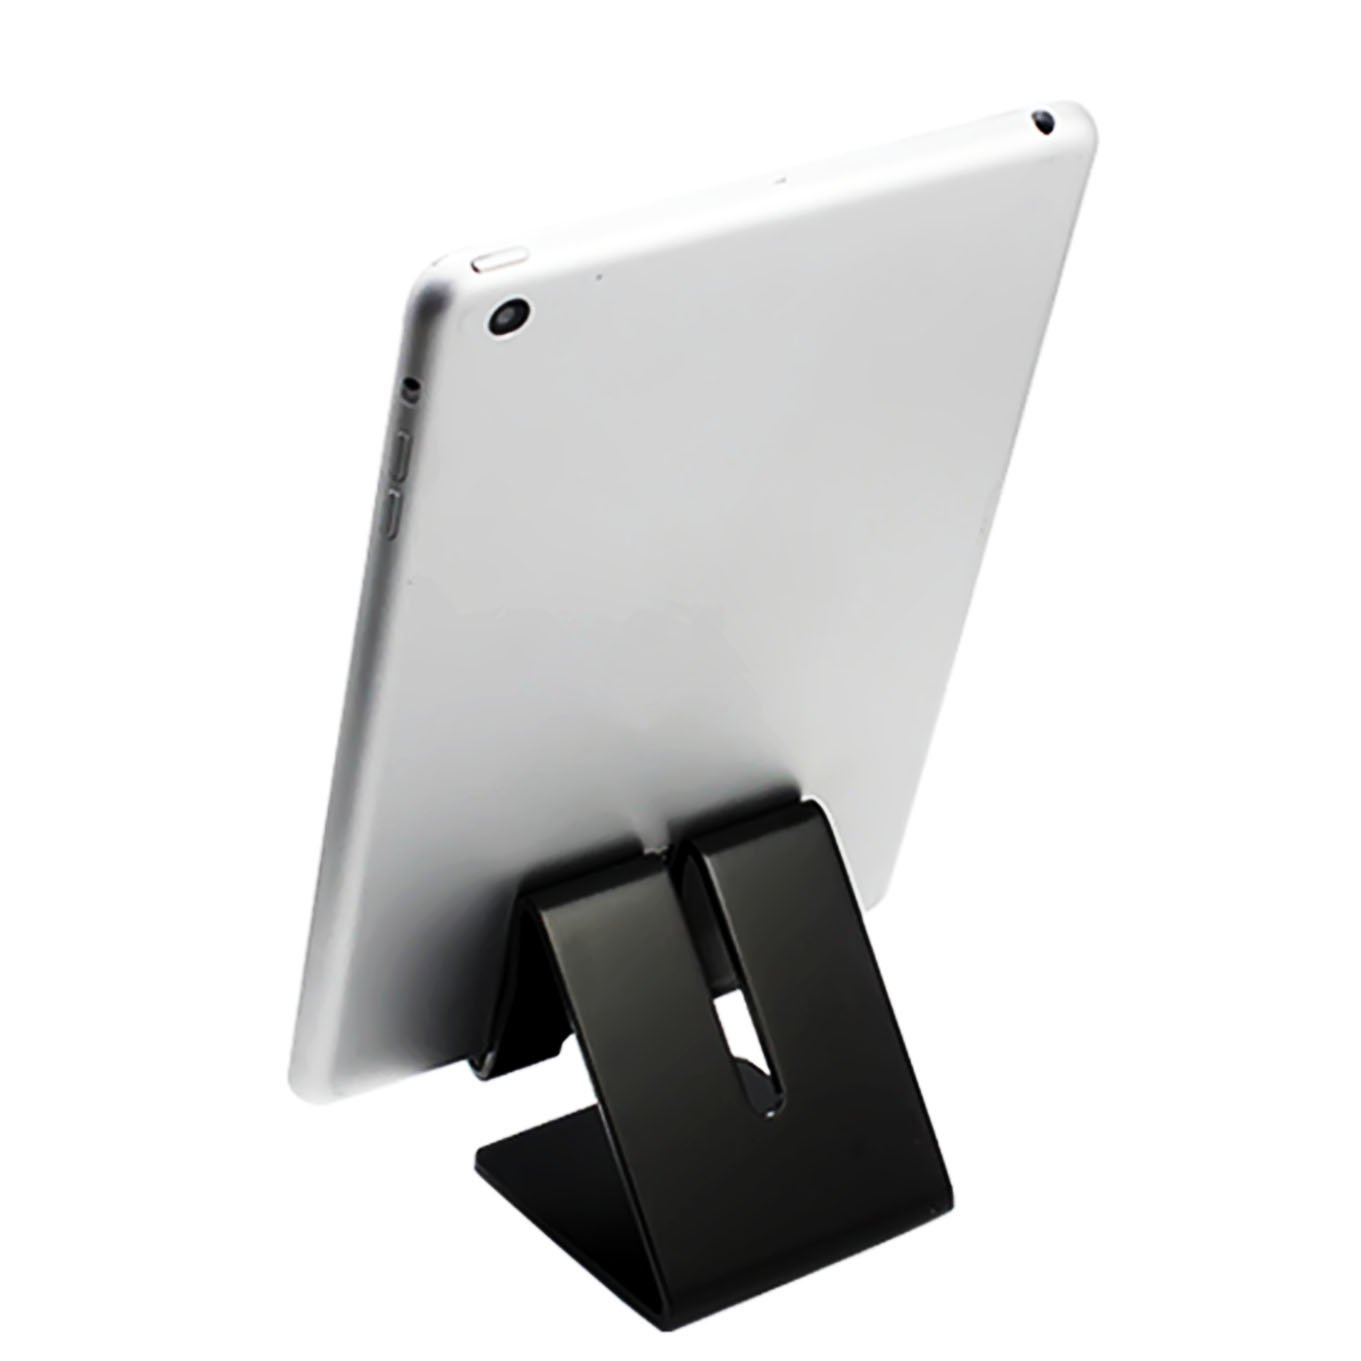 Desktop Cell Phone Stand Tablet Stand,iBarbe Advanced Aluminum Stand Holder for Mobile Phone (All Size) such as Mobile Phone iPhone X,iPhone 8 6S,7 Plus 5S 6 SE 5C etc.Tablet(Up to 10.1 inch), Black